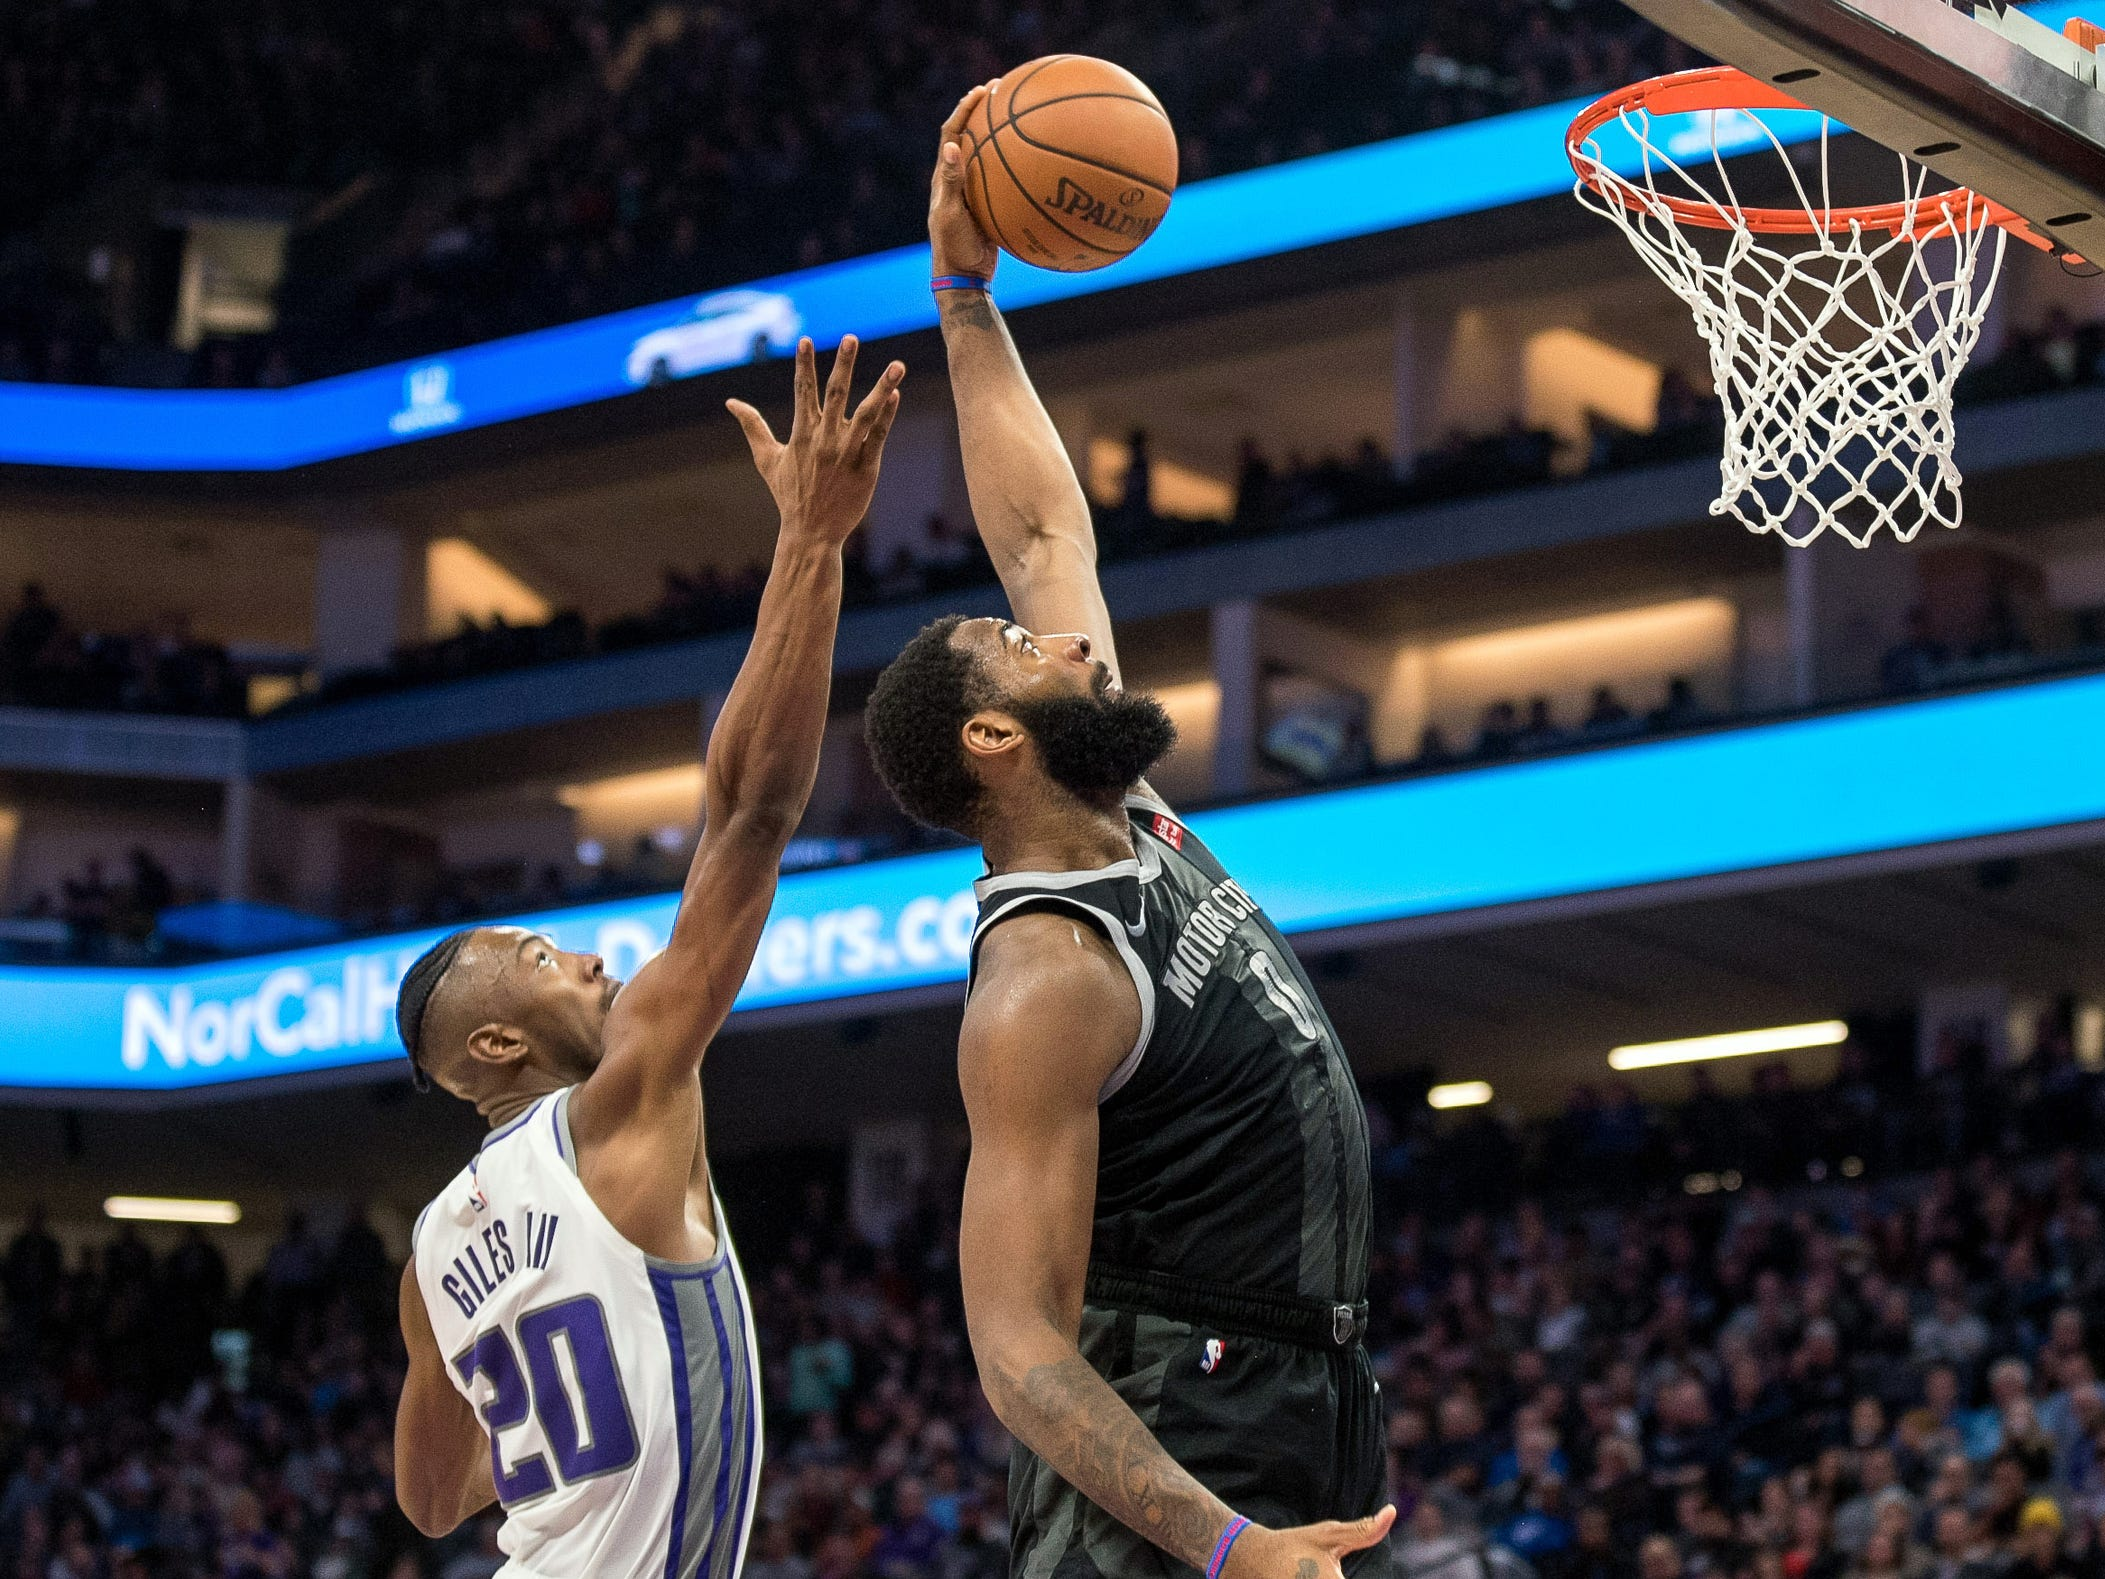 Pistons center Andre Drummond grabs a rebound over Kings forward Harry Giles during the fourth quarter of the 112-102 loss to the Kings on Thursday, Jan. 10, 2019, in Sacramento.